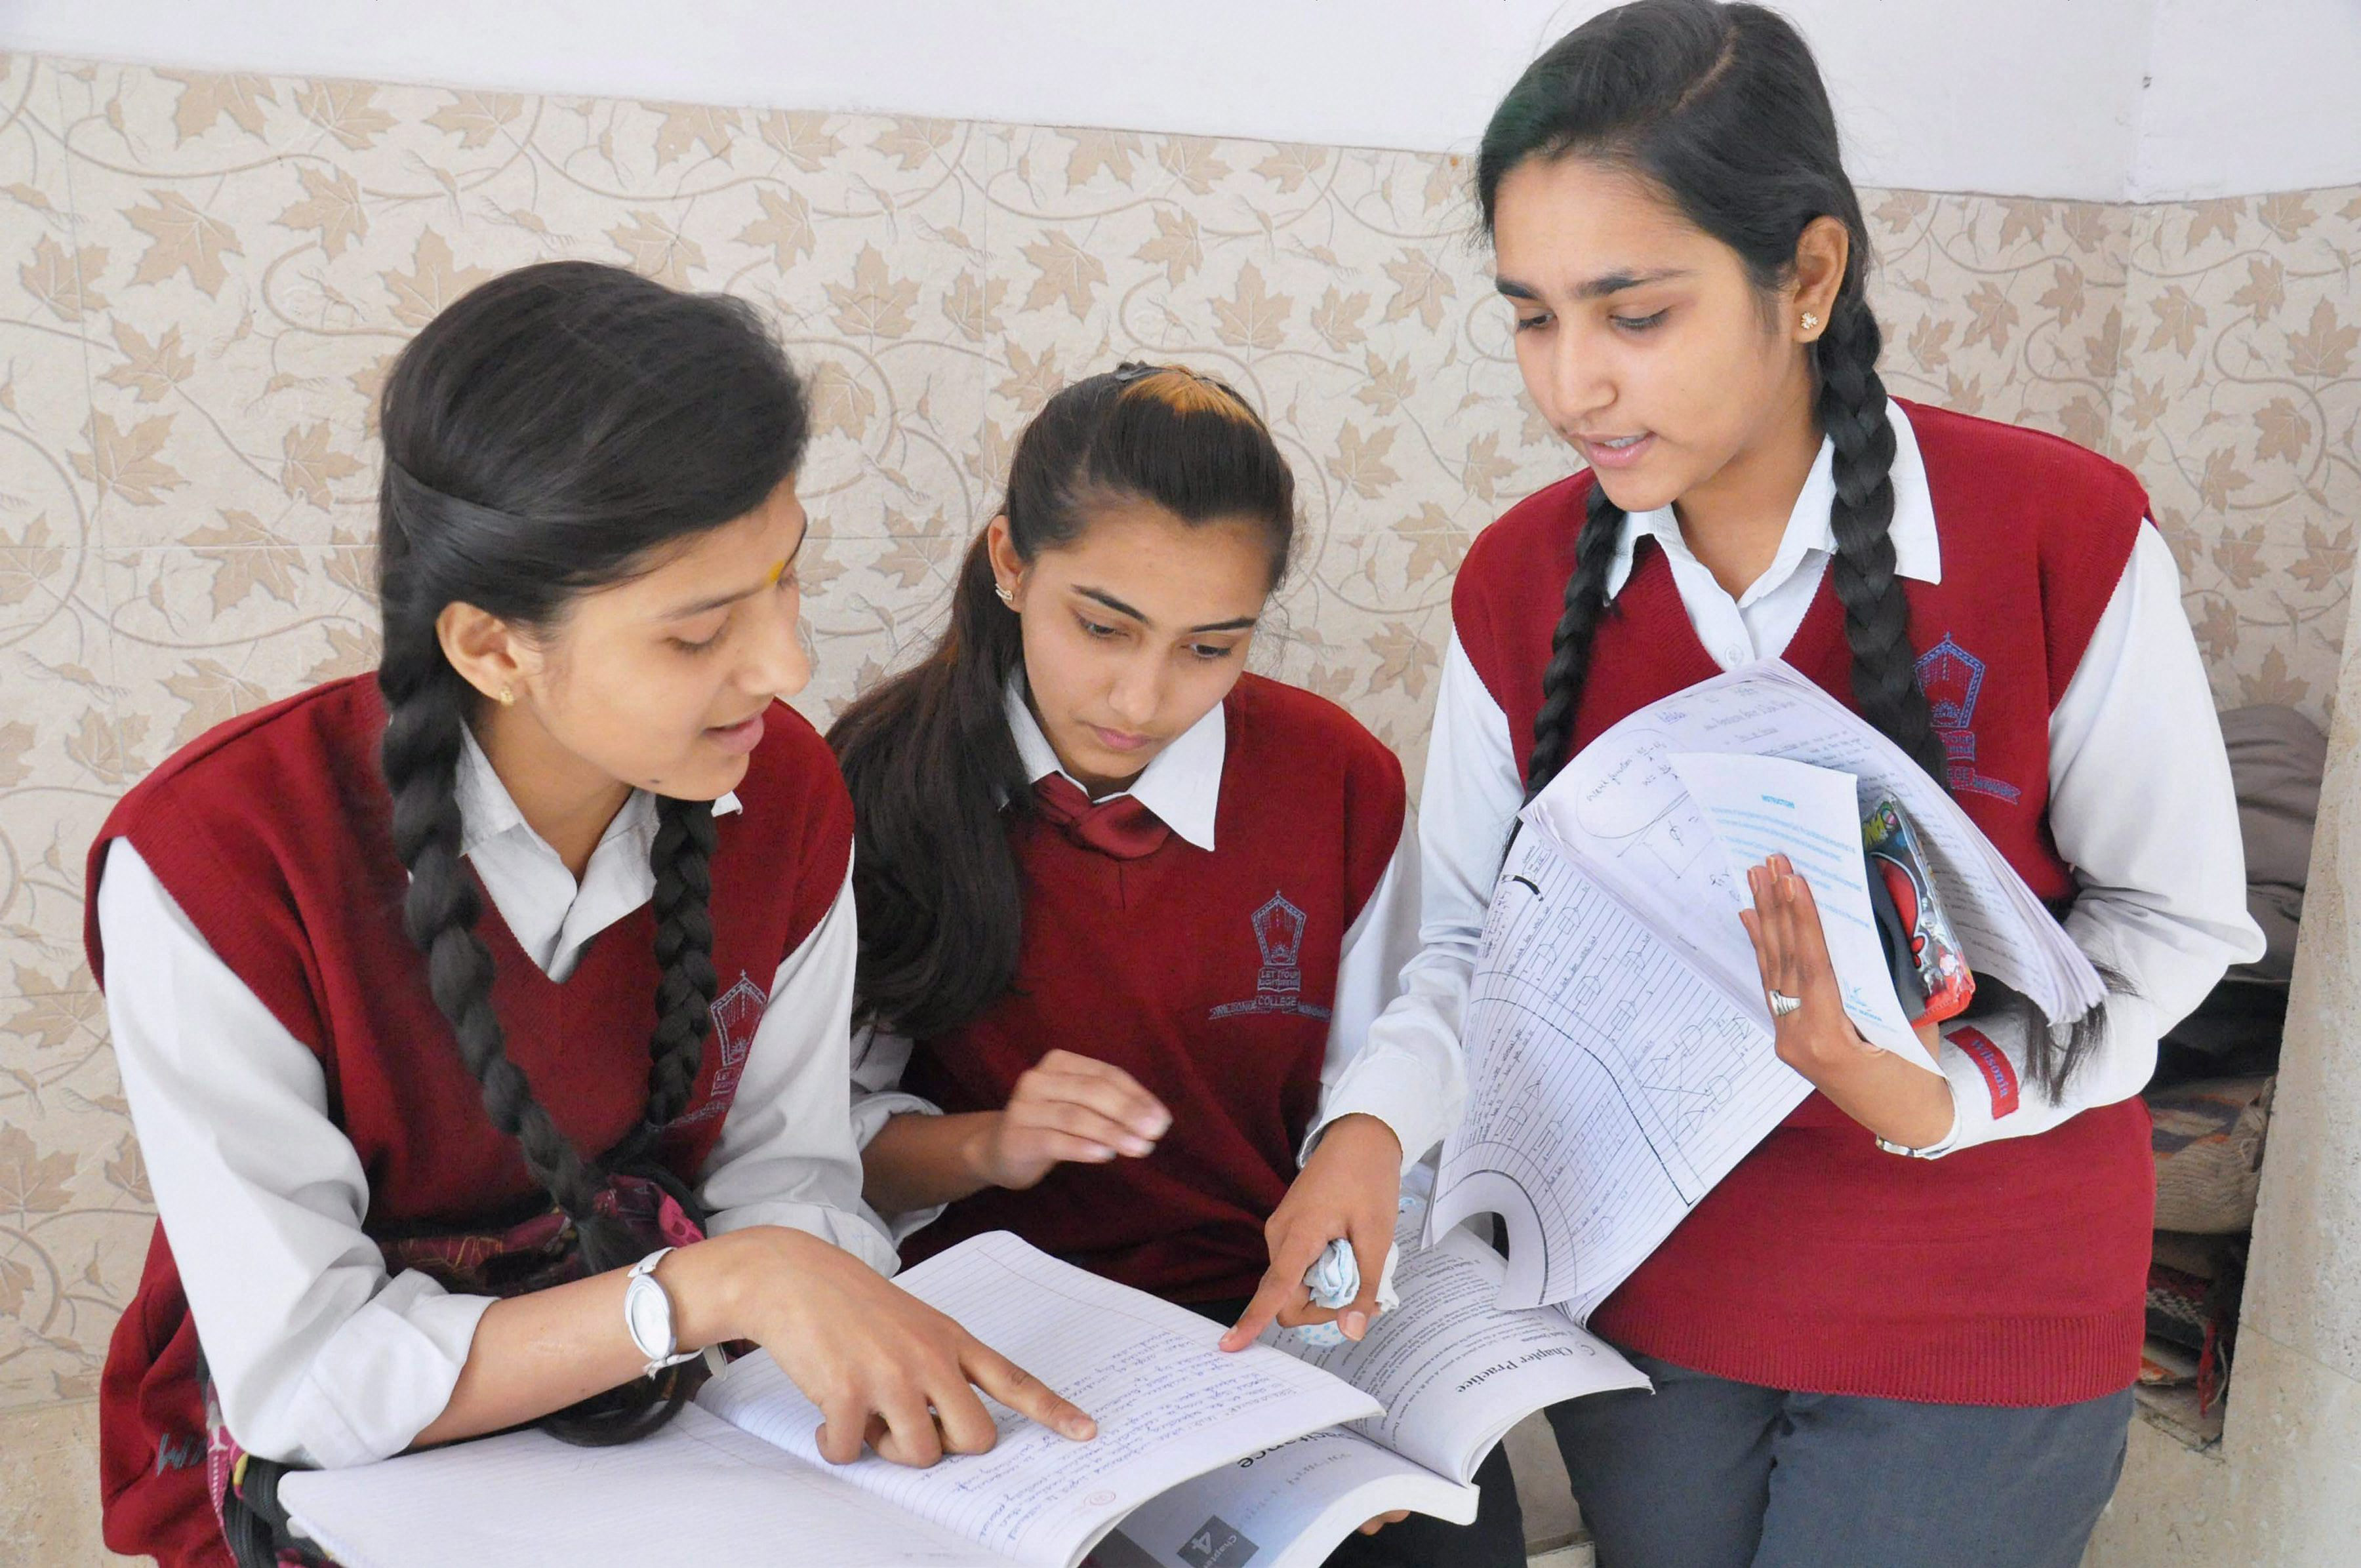 Indian Institute of Technology entrance exam to go completely online from next year